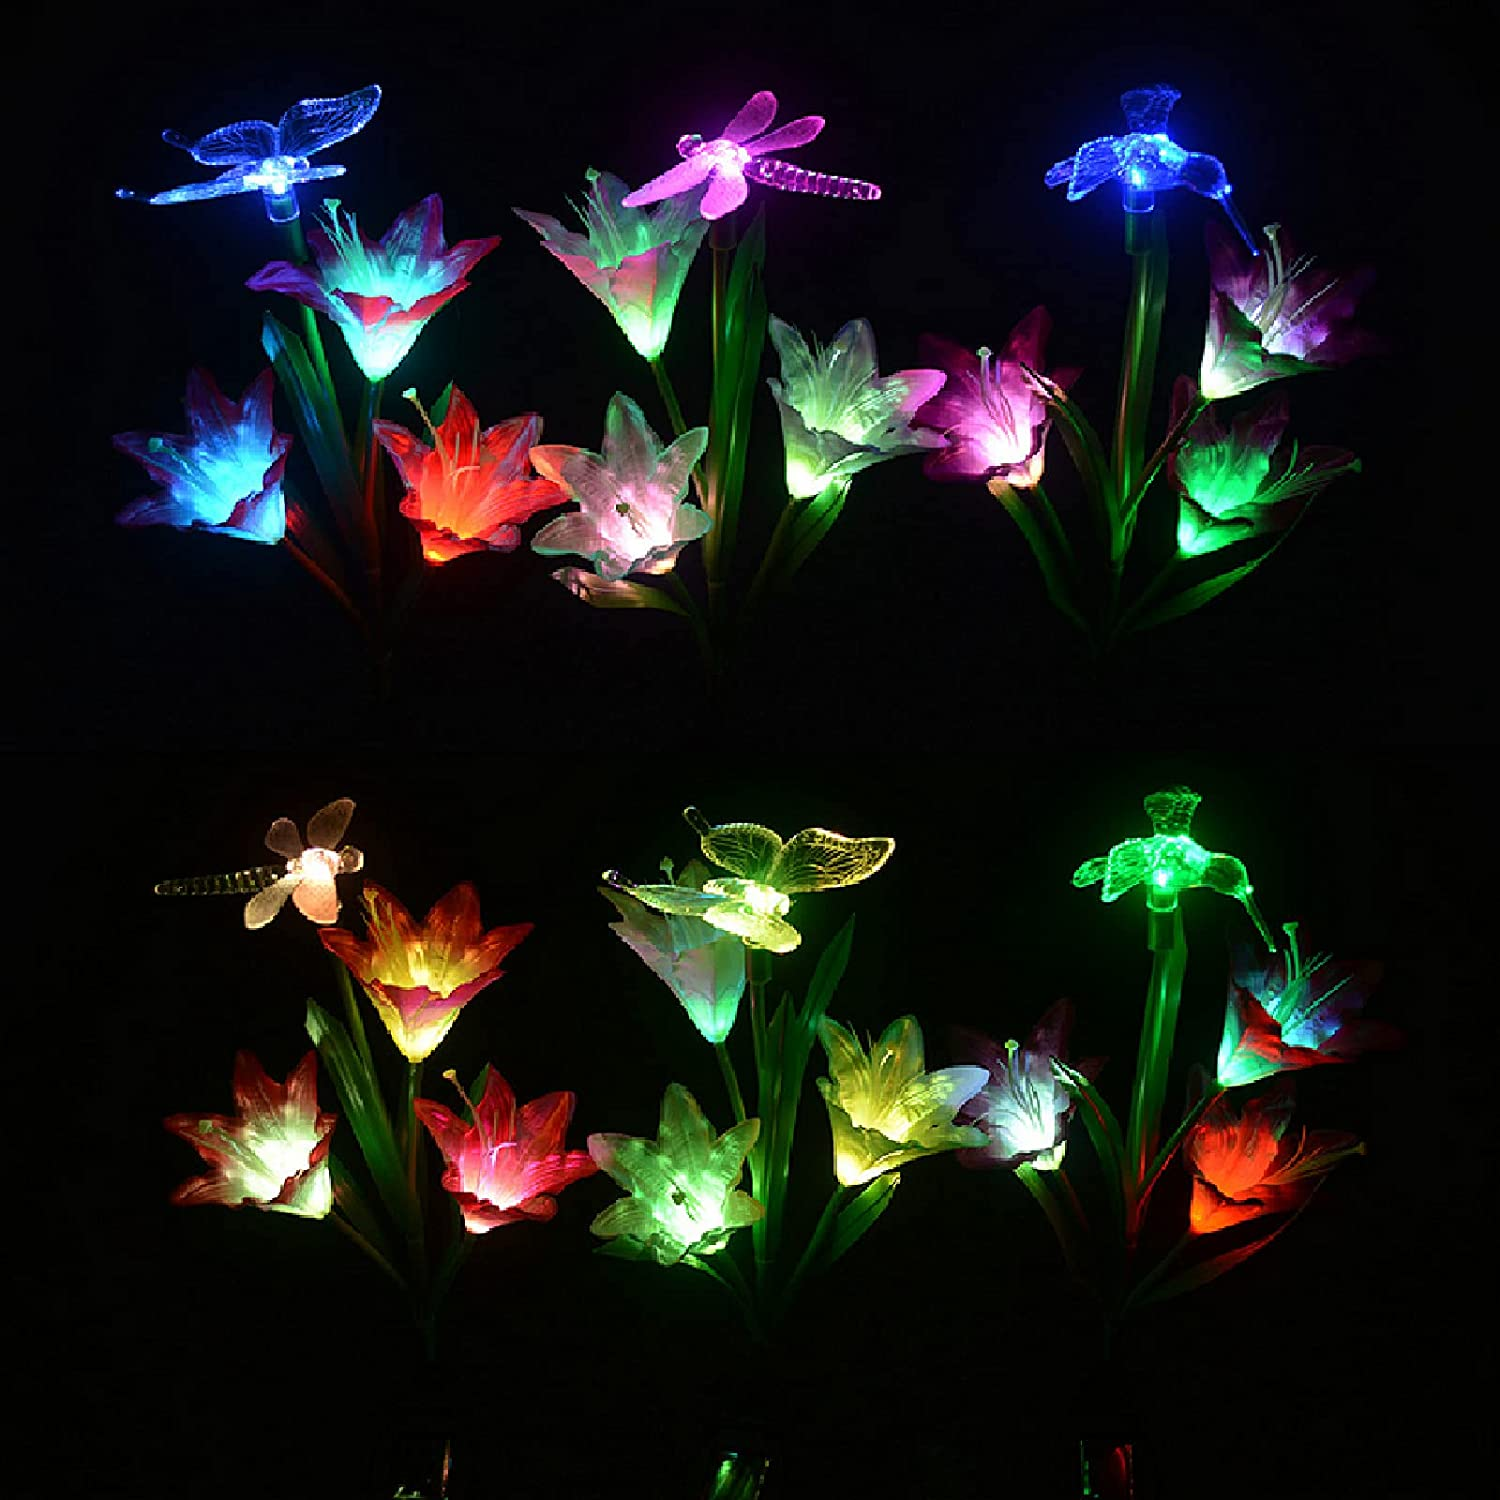 Vency Outdoor Solar LED Flower Garden Light, Garden Decor with 9 Lily Flower and Butterflies Combination Decorative Lights Multi-Color Changing LED Solar Stake Lights for Garden, Patio, Backyard